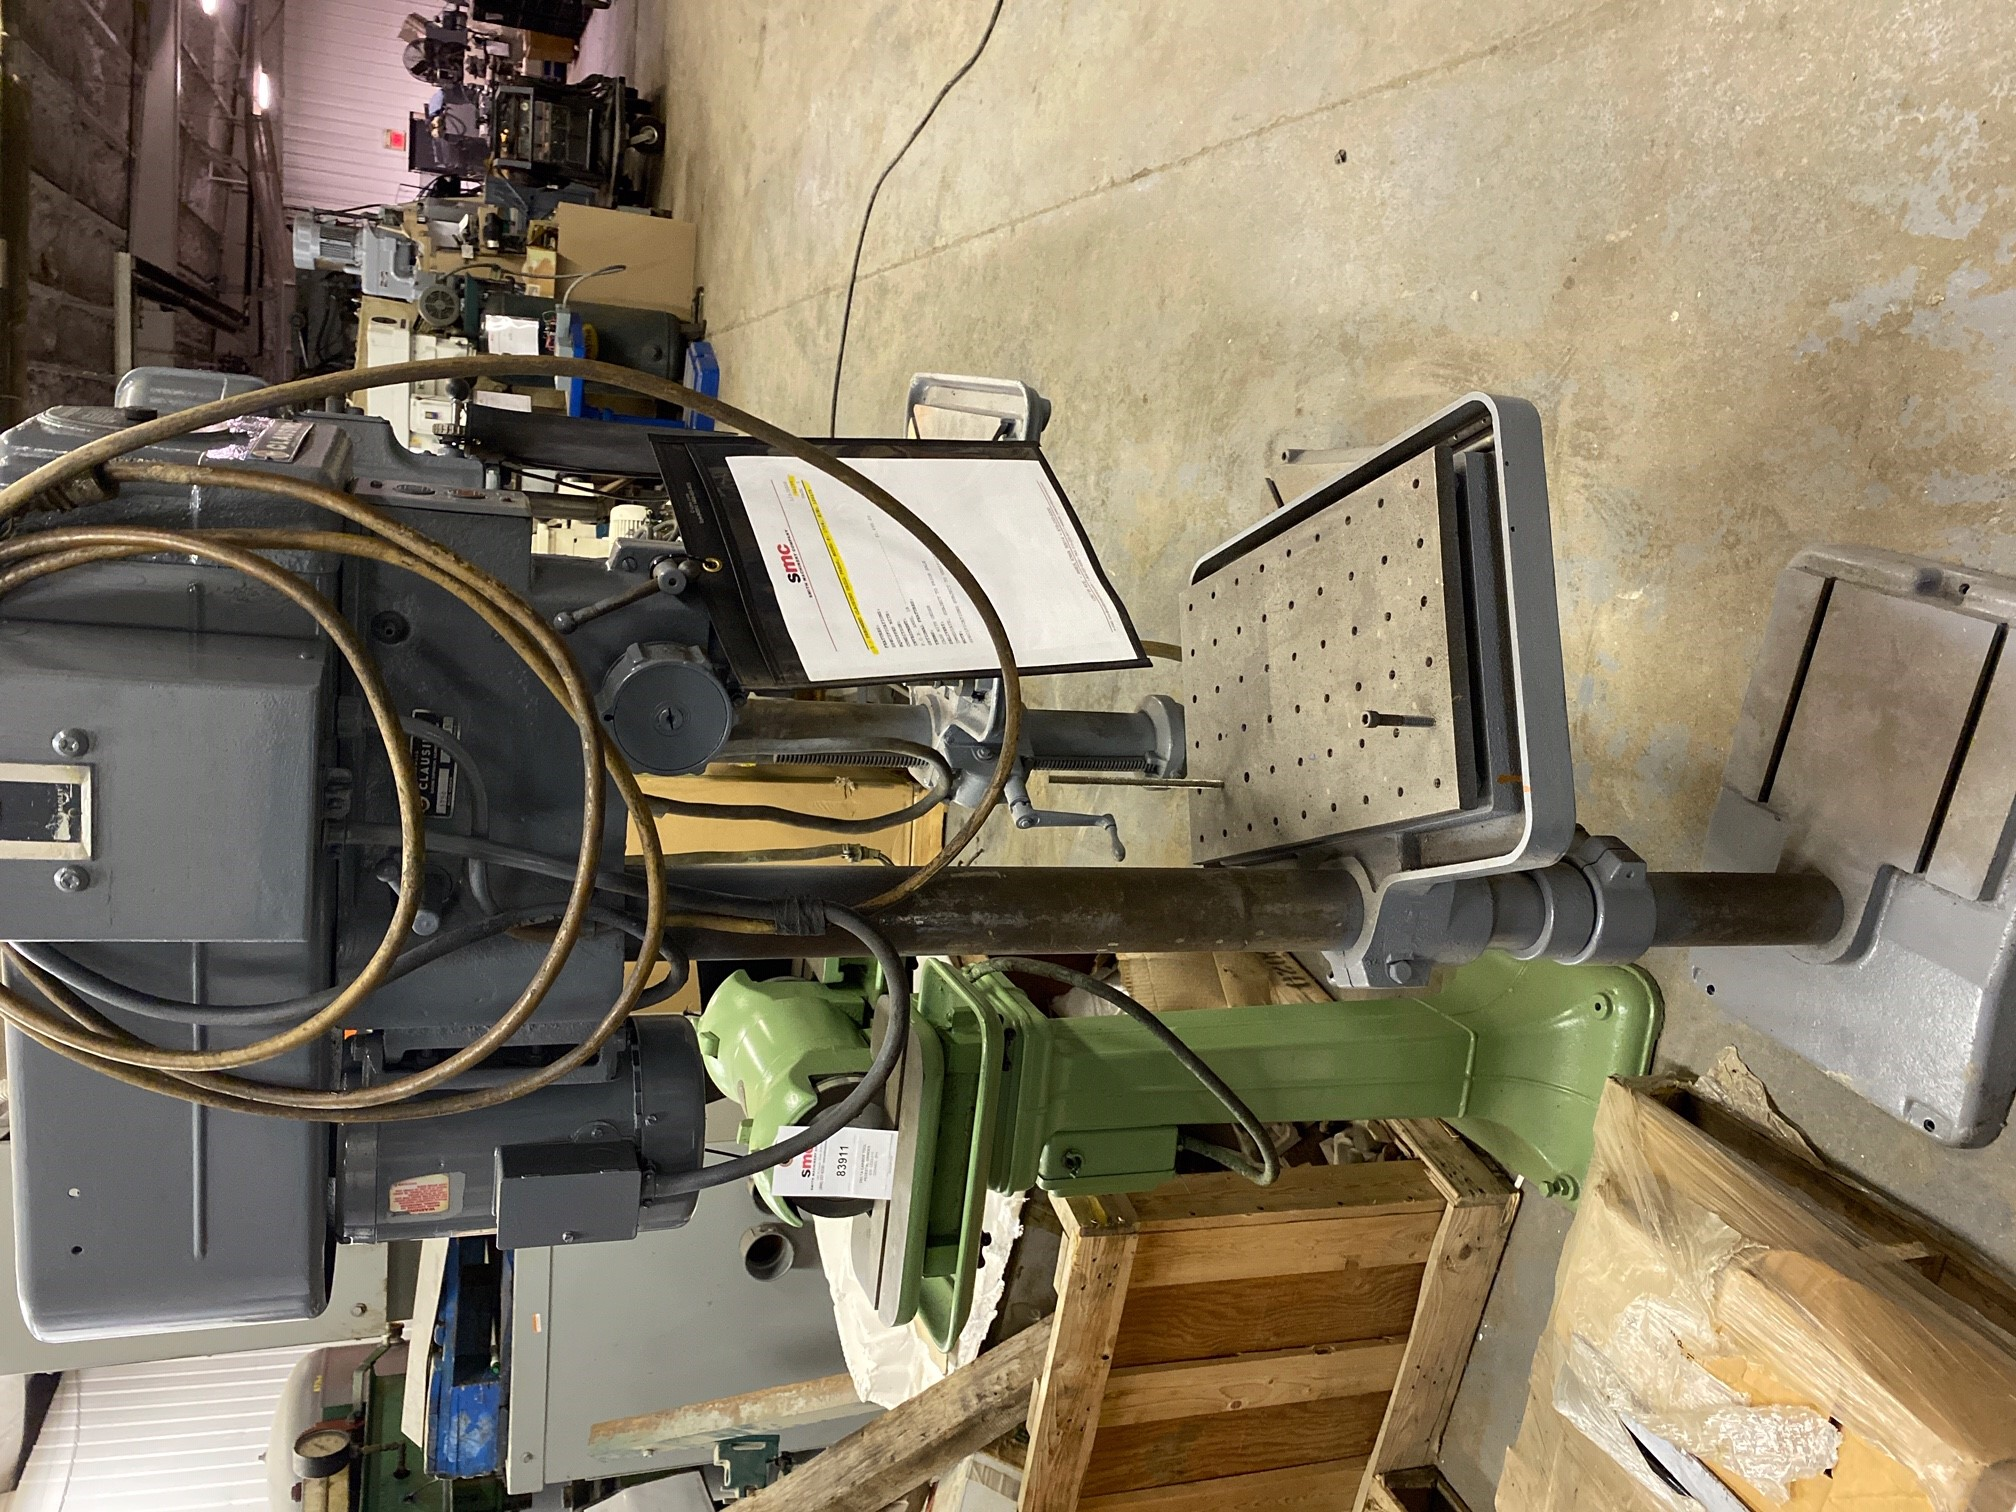 1 - PREOWNED CLAUSING DRILL PRESS, MODEL #: 1754, S/N: 120275